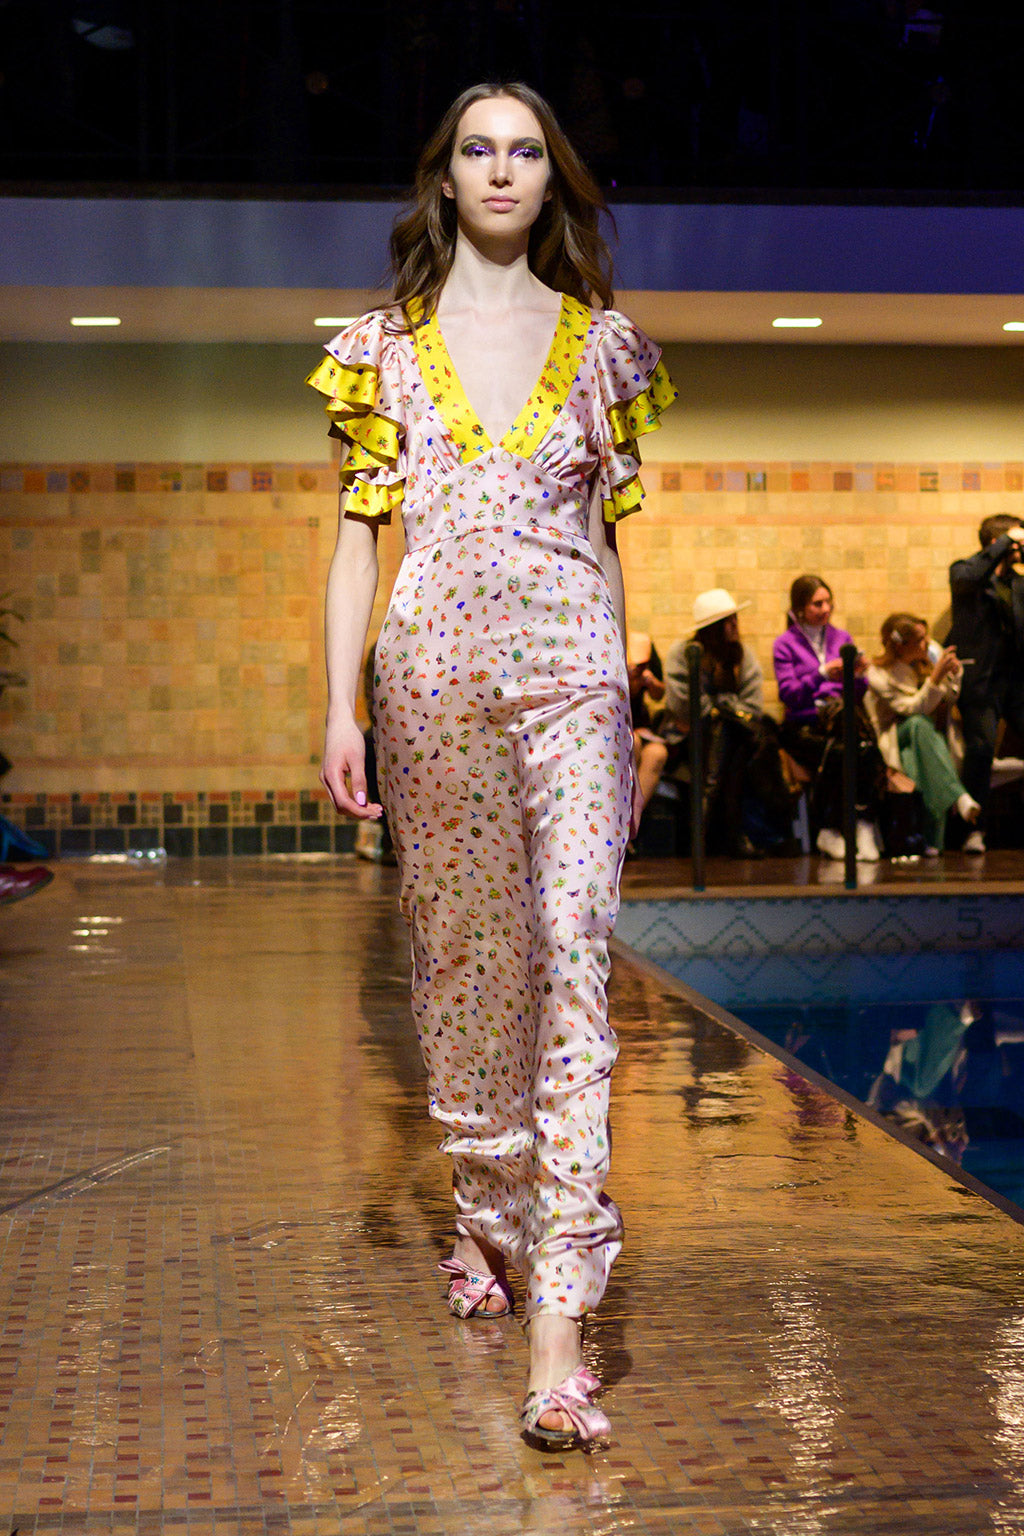 Cynthia Rowley Fall 2019 look 19 featuring a pink and yellow maxi dress with short sleeves with ruffles